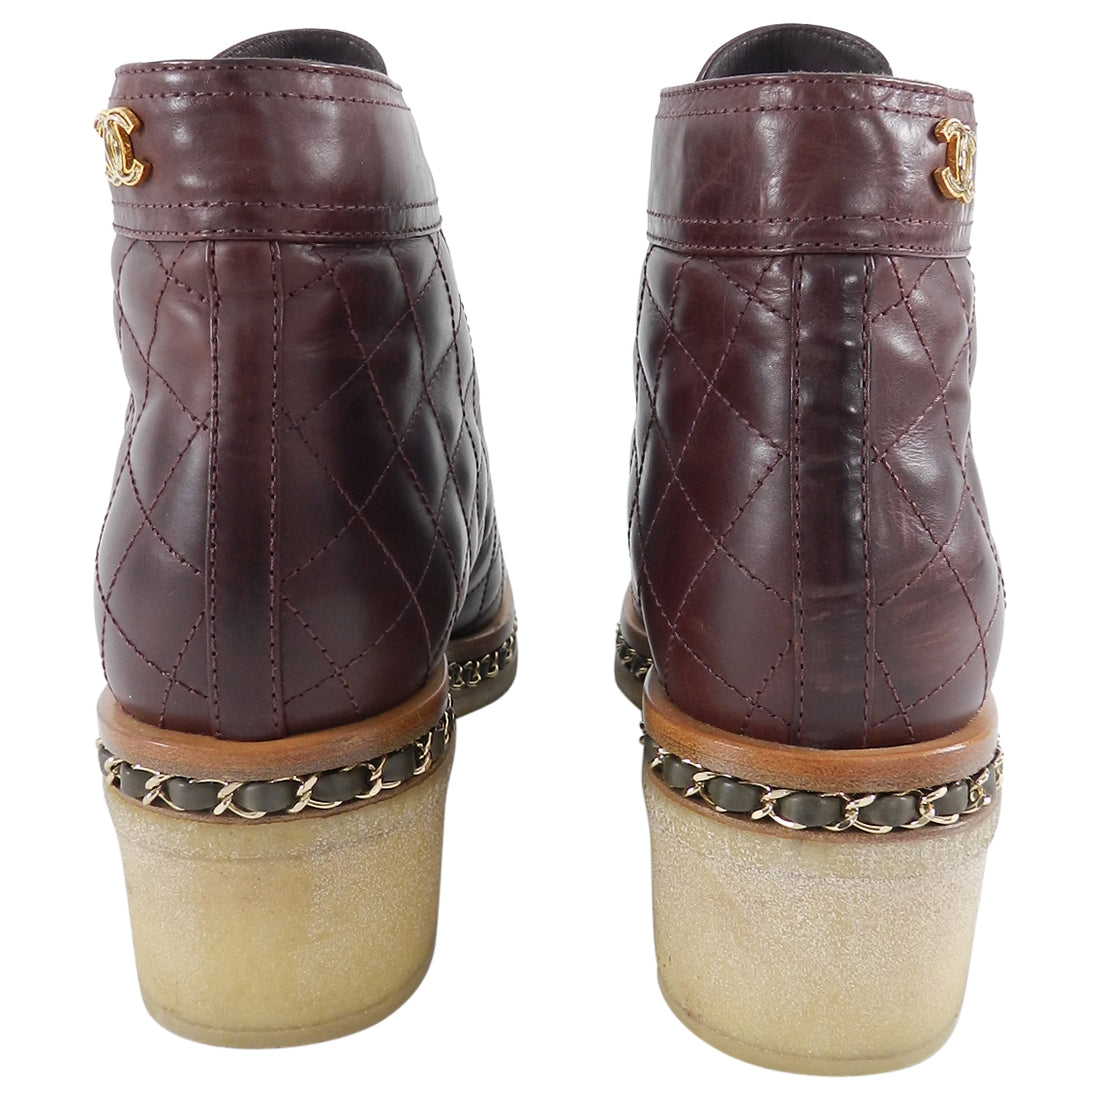 Chanel Burgundy and Olive Quilt Ankle Boots with Gold Chain - 41